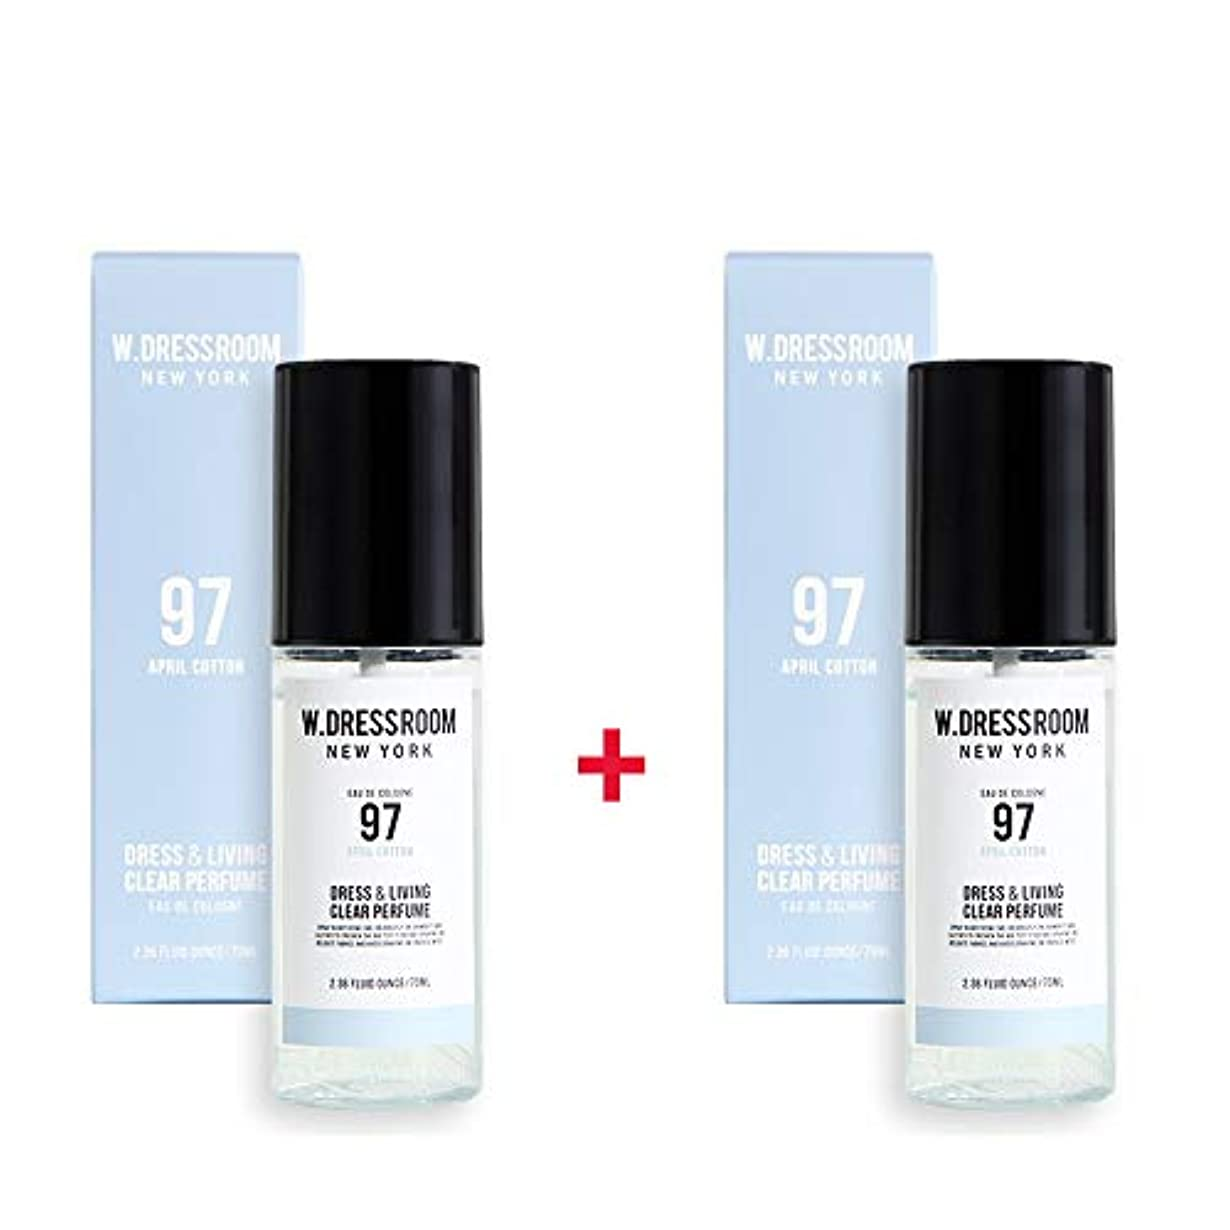 ミシン賢い特派員W.DRESSROOM Dress & Living Clear Perfume 70ml (No 97 April Cotton)+(No 97 April Cotton)